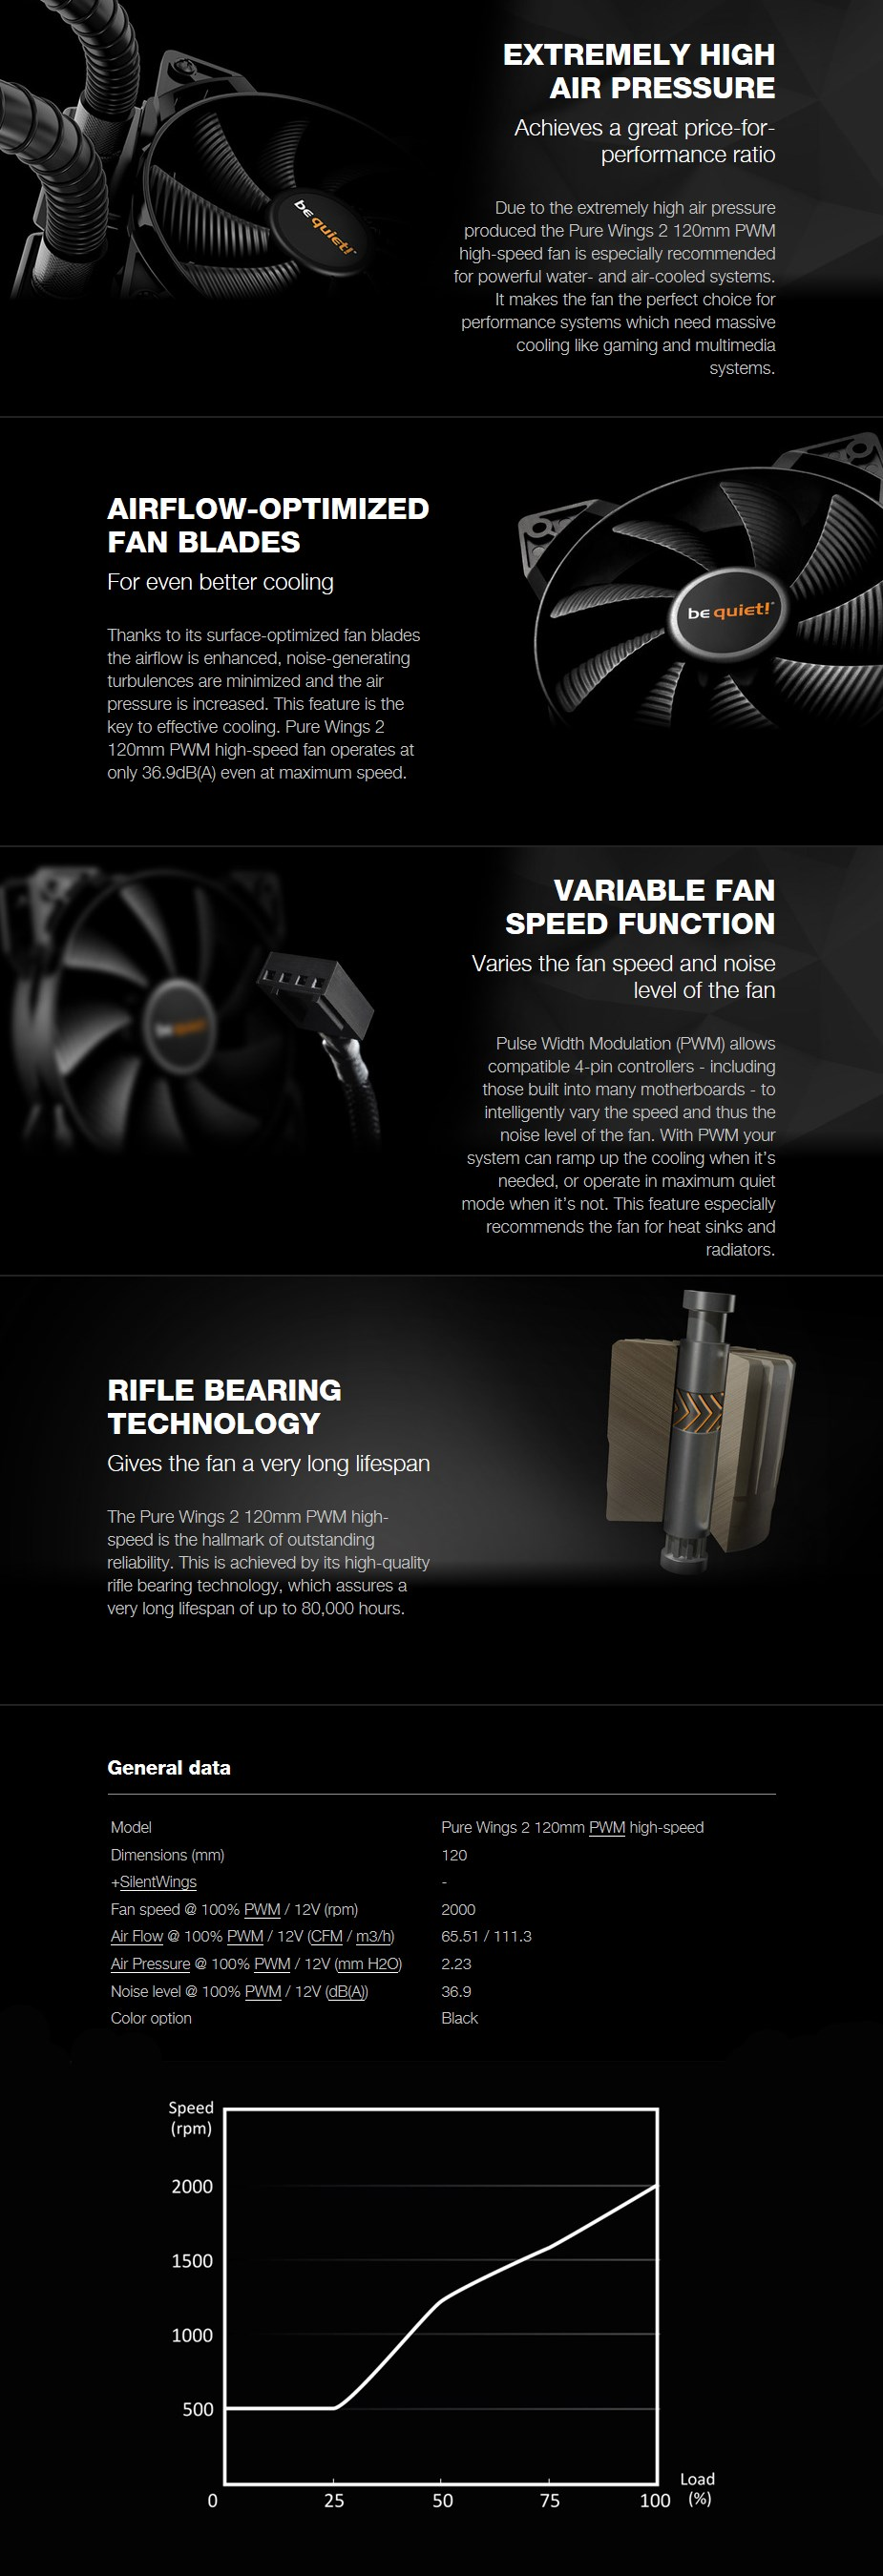 be quiet! Pure Wings 2 120mm PWM Case Fan - High-Speed Edition - Overview 1